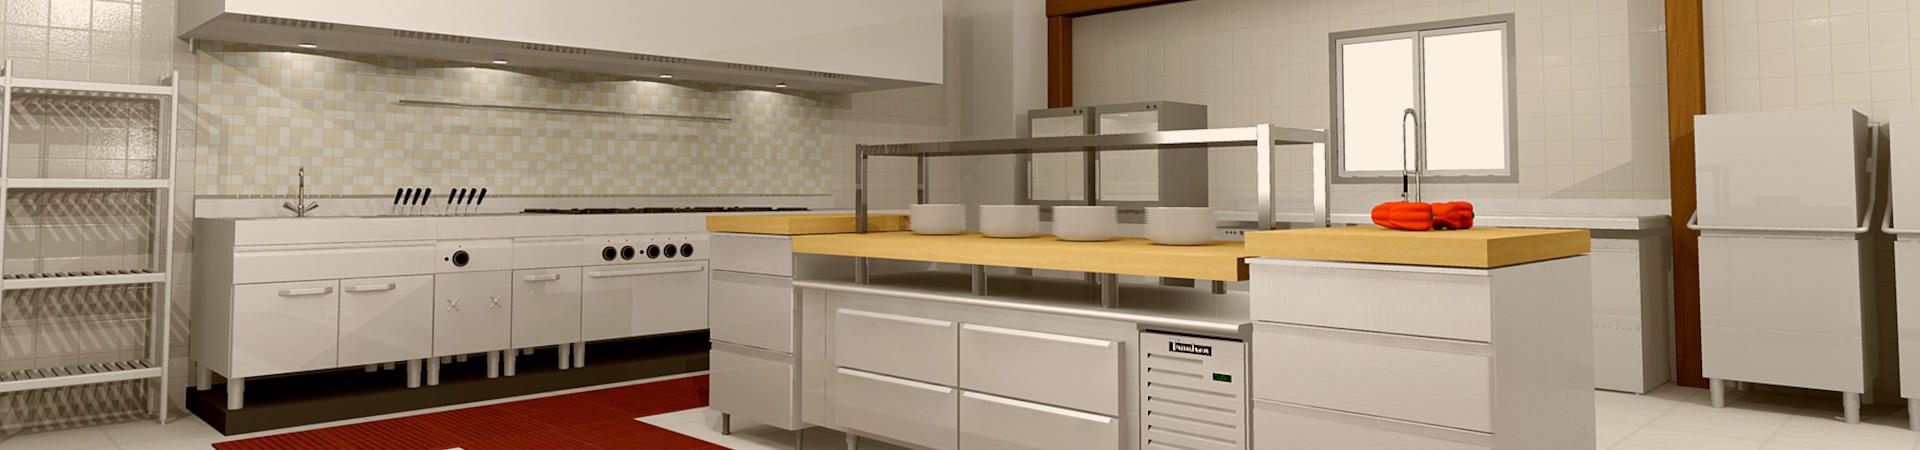 autokitchen technology guarantees you maximum flexibility, power, and compatibility.